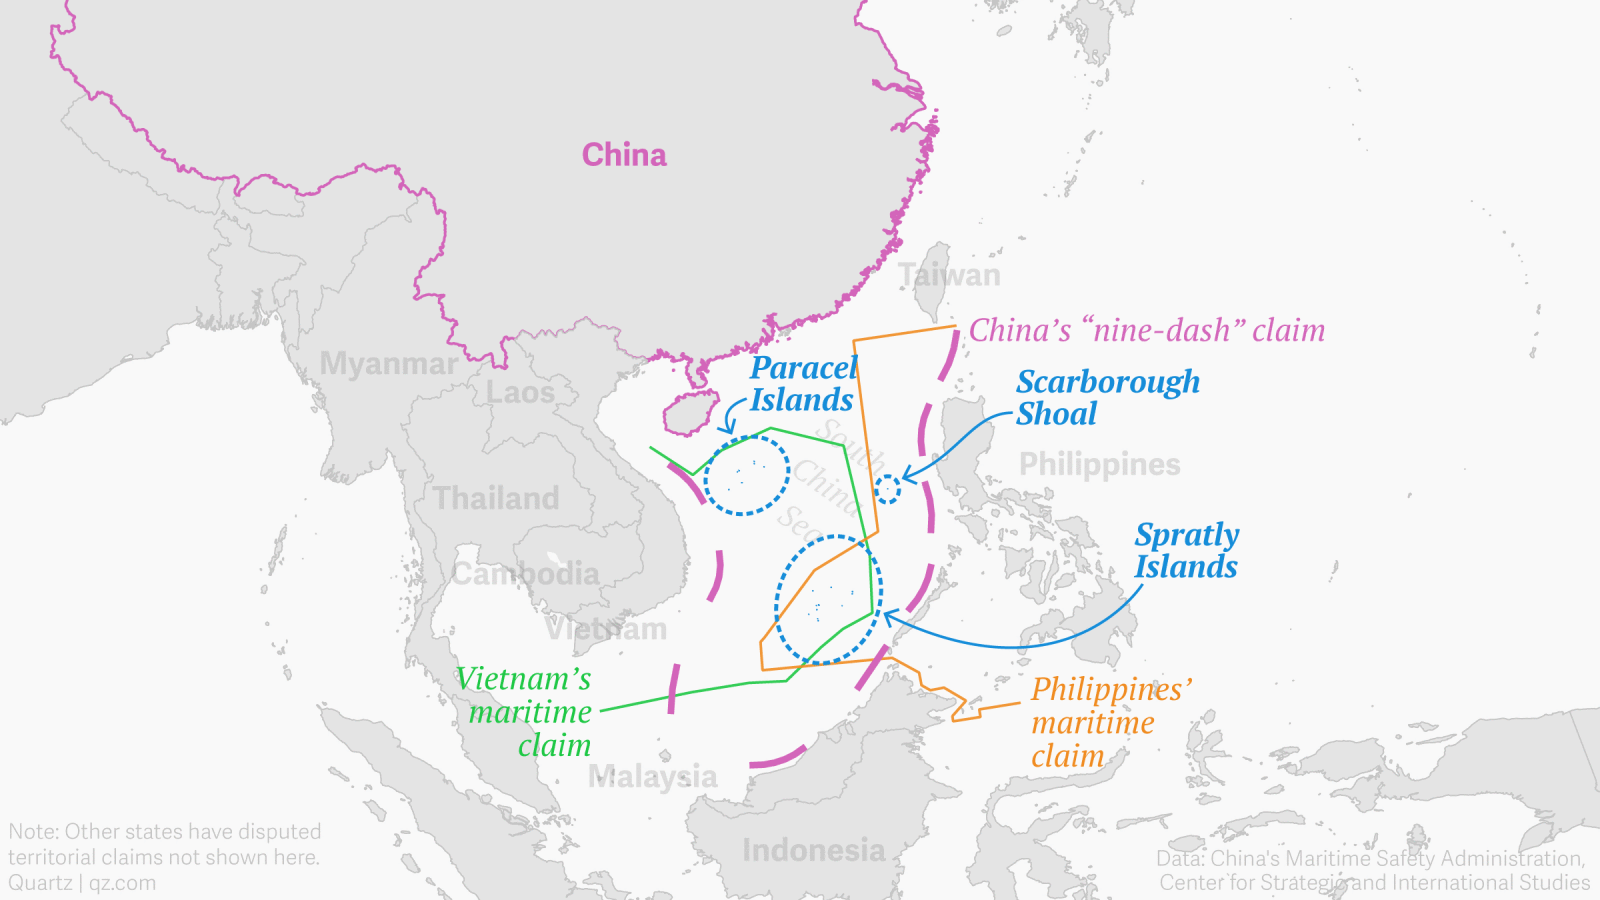 China's claim over the South China Sea is different from its neighbors' interpretations.